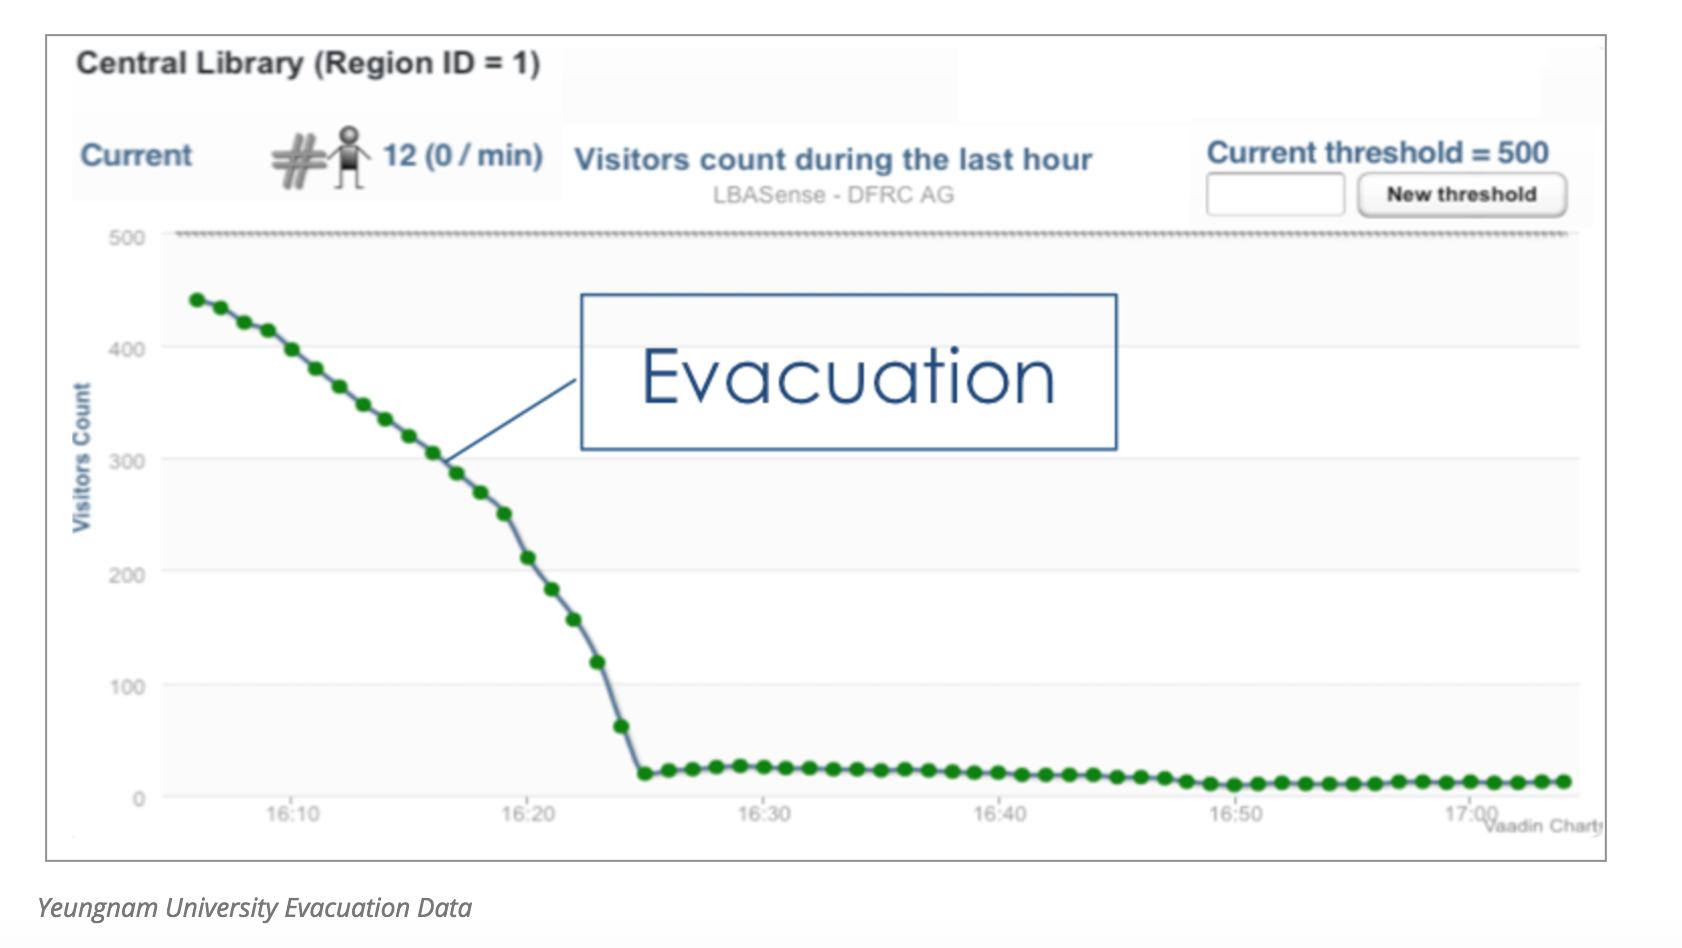 Yeugnam University Evacuation Data